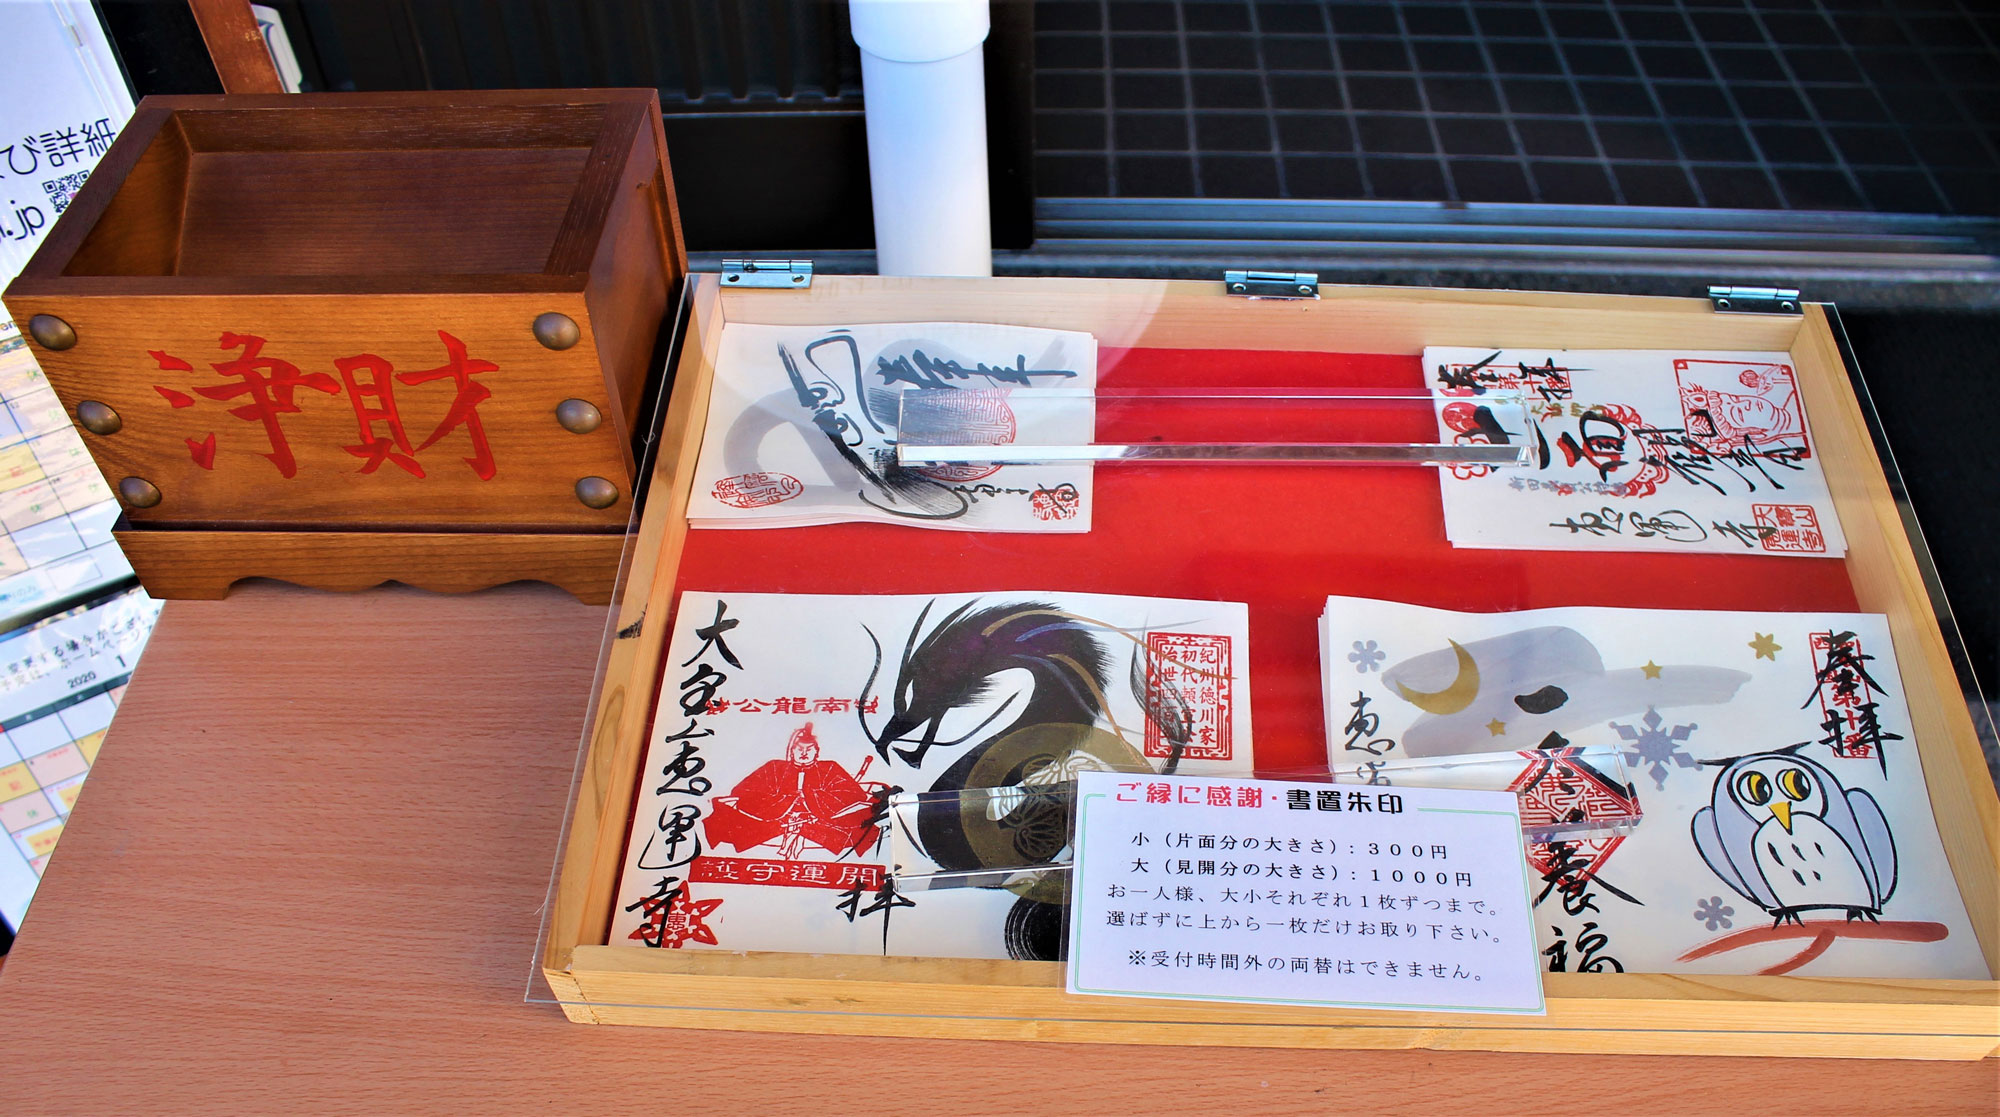 Unmanned sales of  Goshuin ( red stamp)  (This is a style where you put your money in the donation box and take it home. You can take it home anytime regardless of the Goshuin(red stamp)  schedule.)の写真